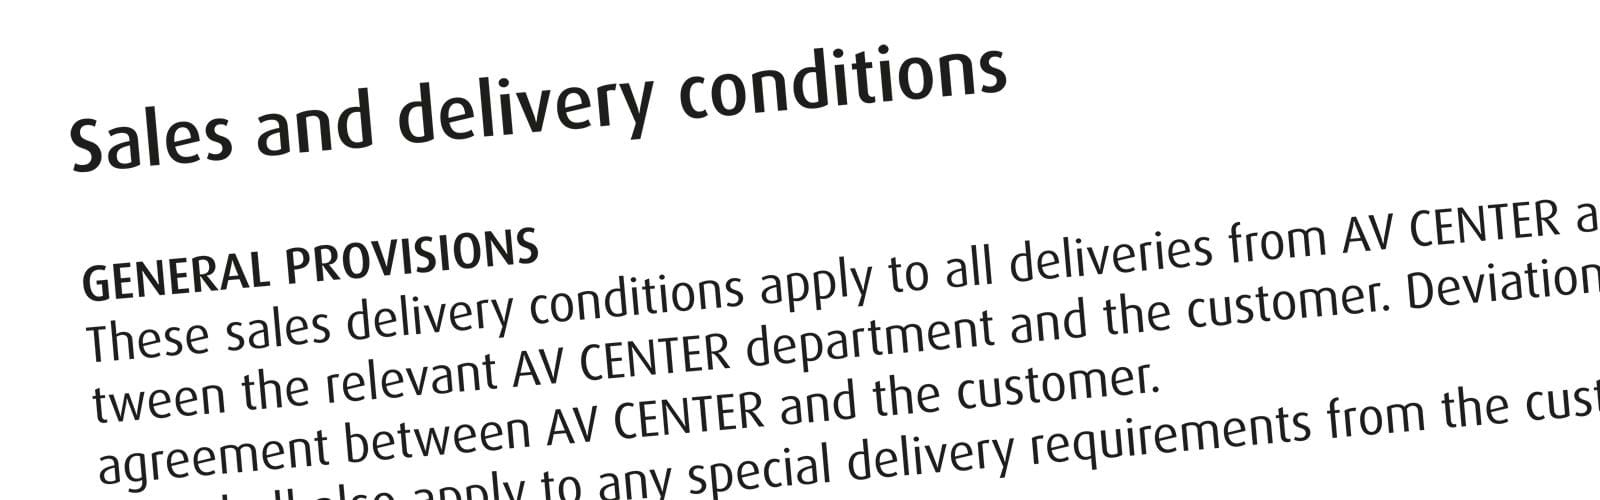 AV Sales and delivery conditions